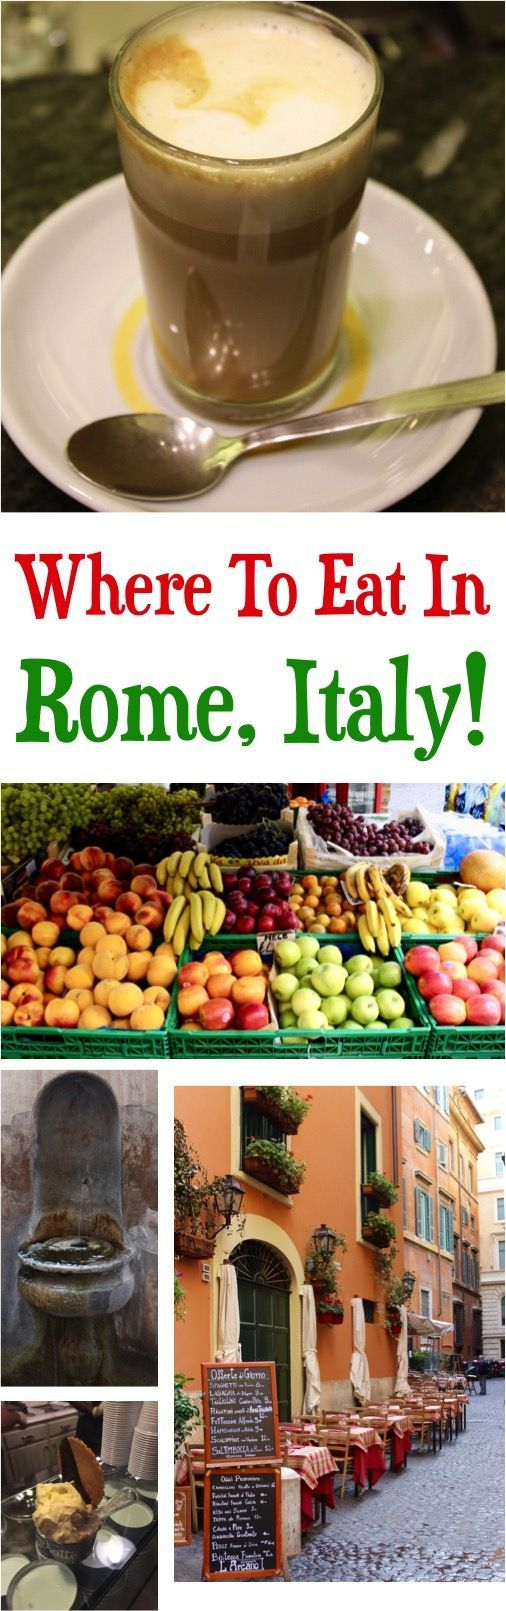 Rome Italy Food - Best authentic Italian food - eat where the locals eat!  Where to find the best coffee, pasta, gelato, and more on your Italy vacation! | at NeverEndingJourneys.com